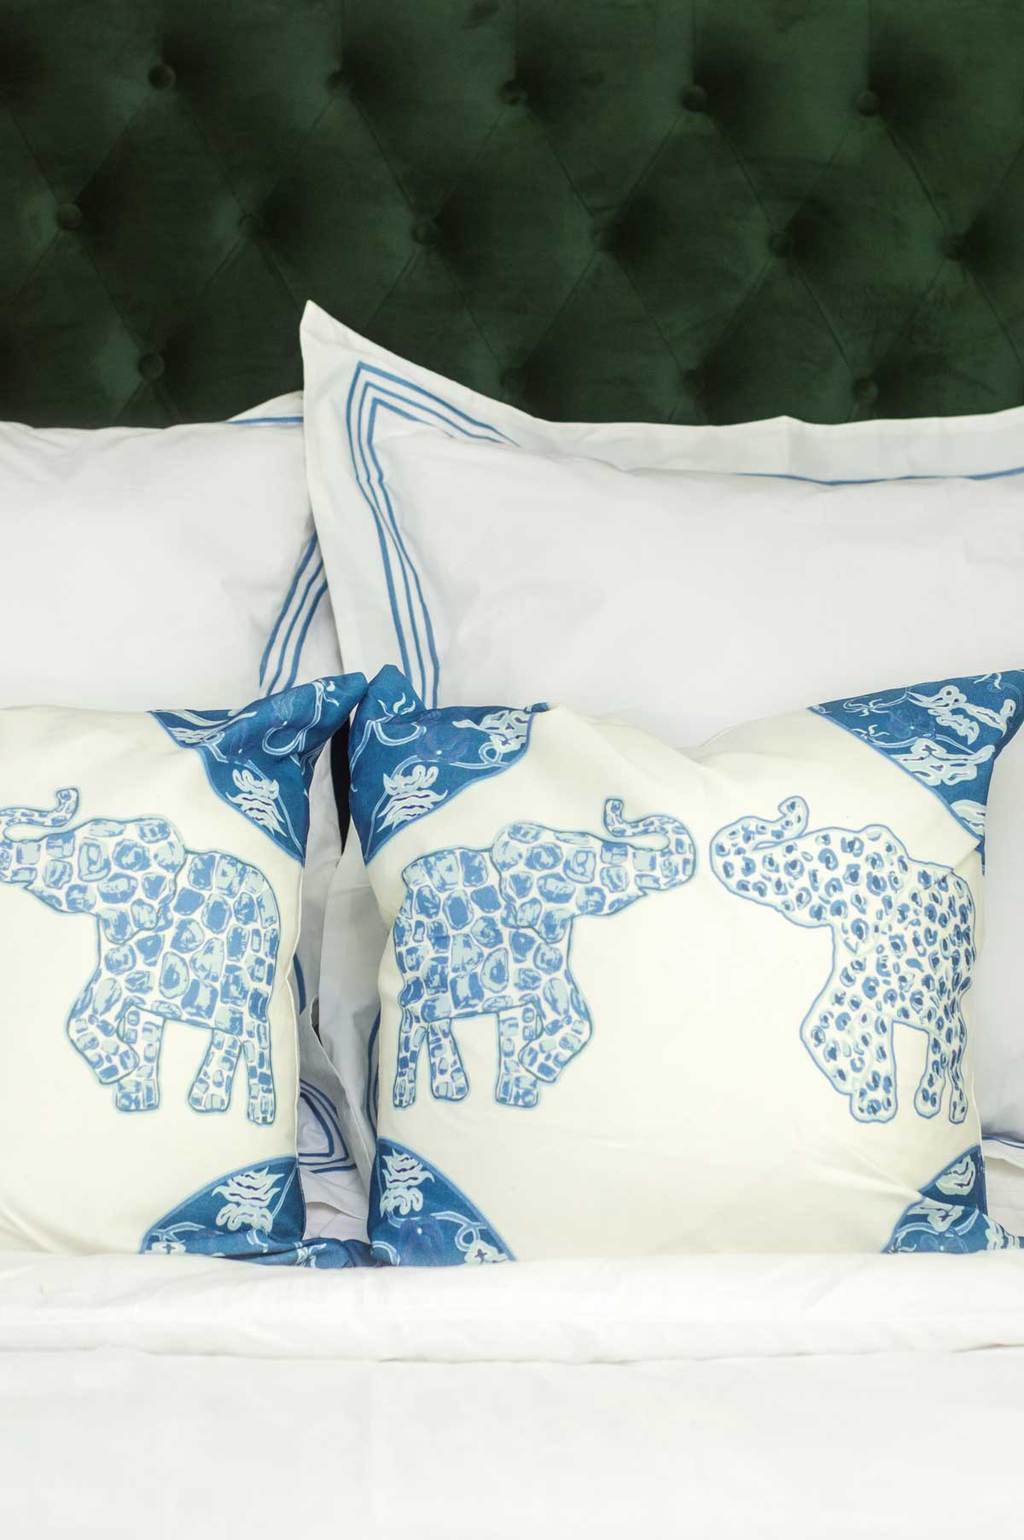 Blue and white Elephant pillows by Shelby Dillon Studio on Thou Swell @thouswellblog